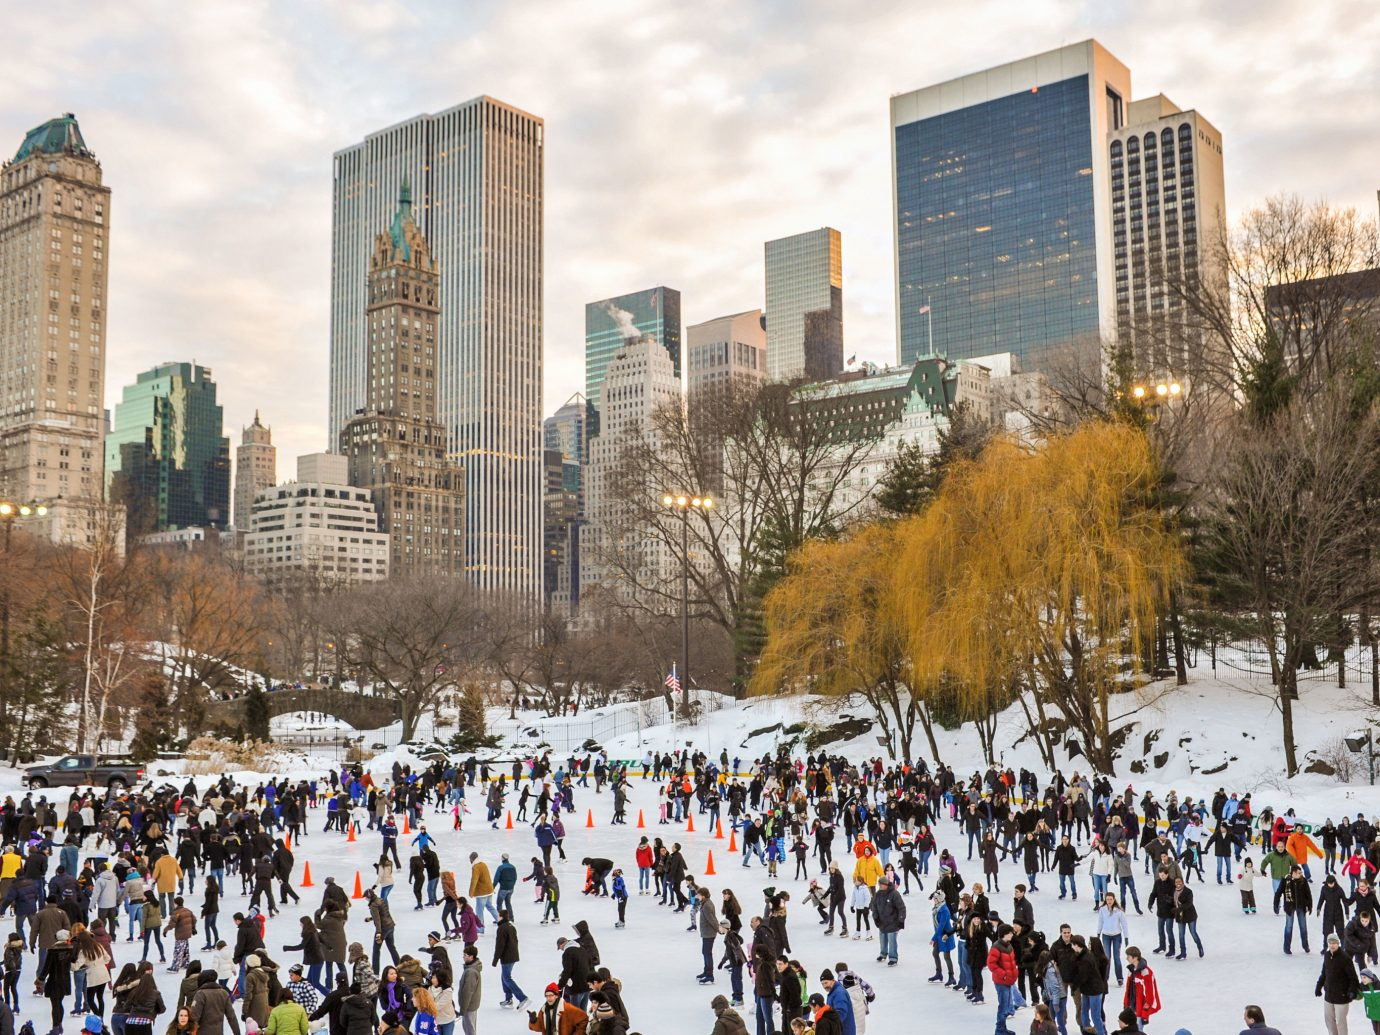 outdoor building rink people group crowd City skyline Winter human settlement urban area Downtown season cityscape endurance line gathered